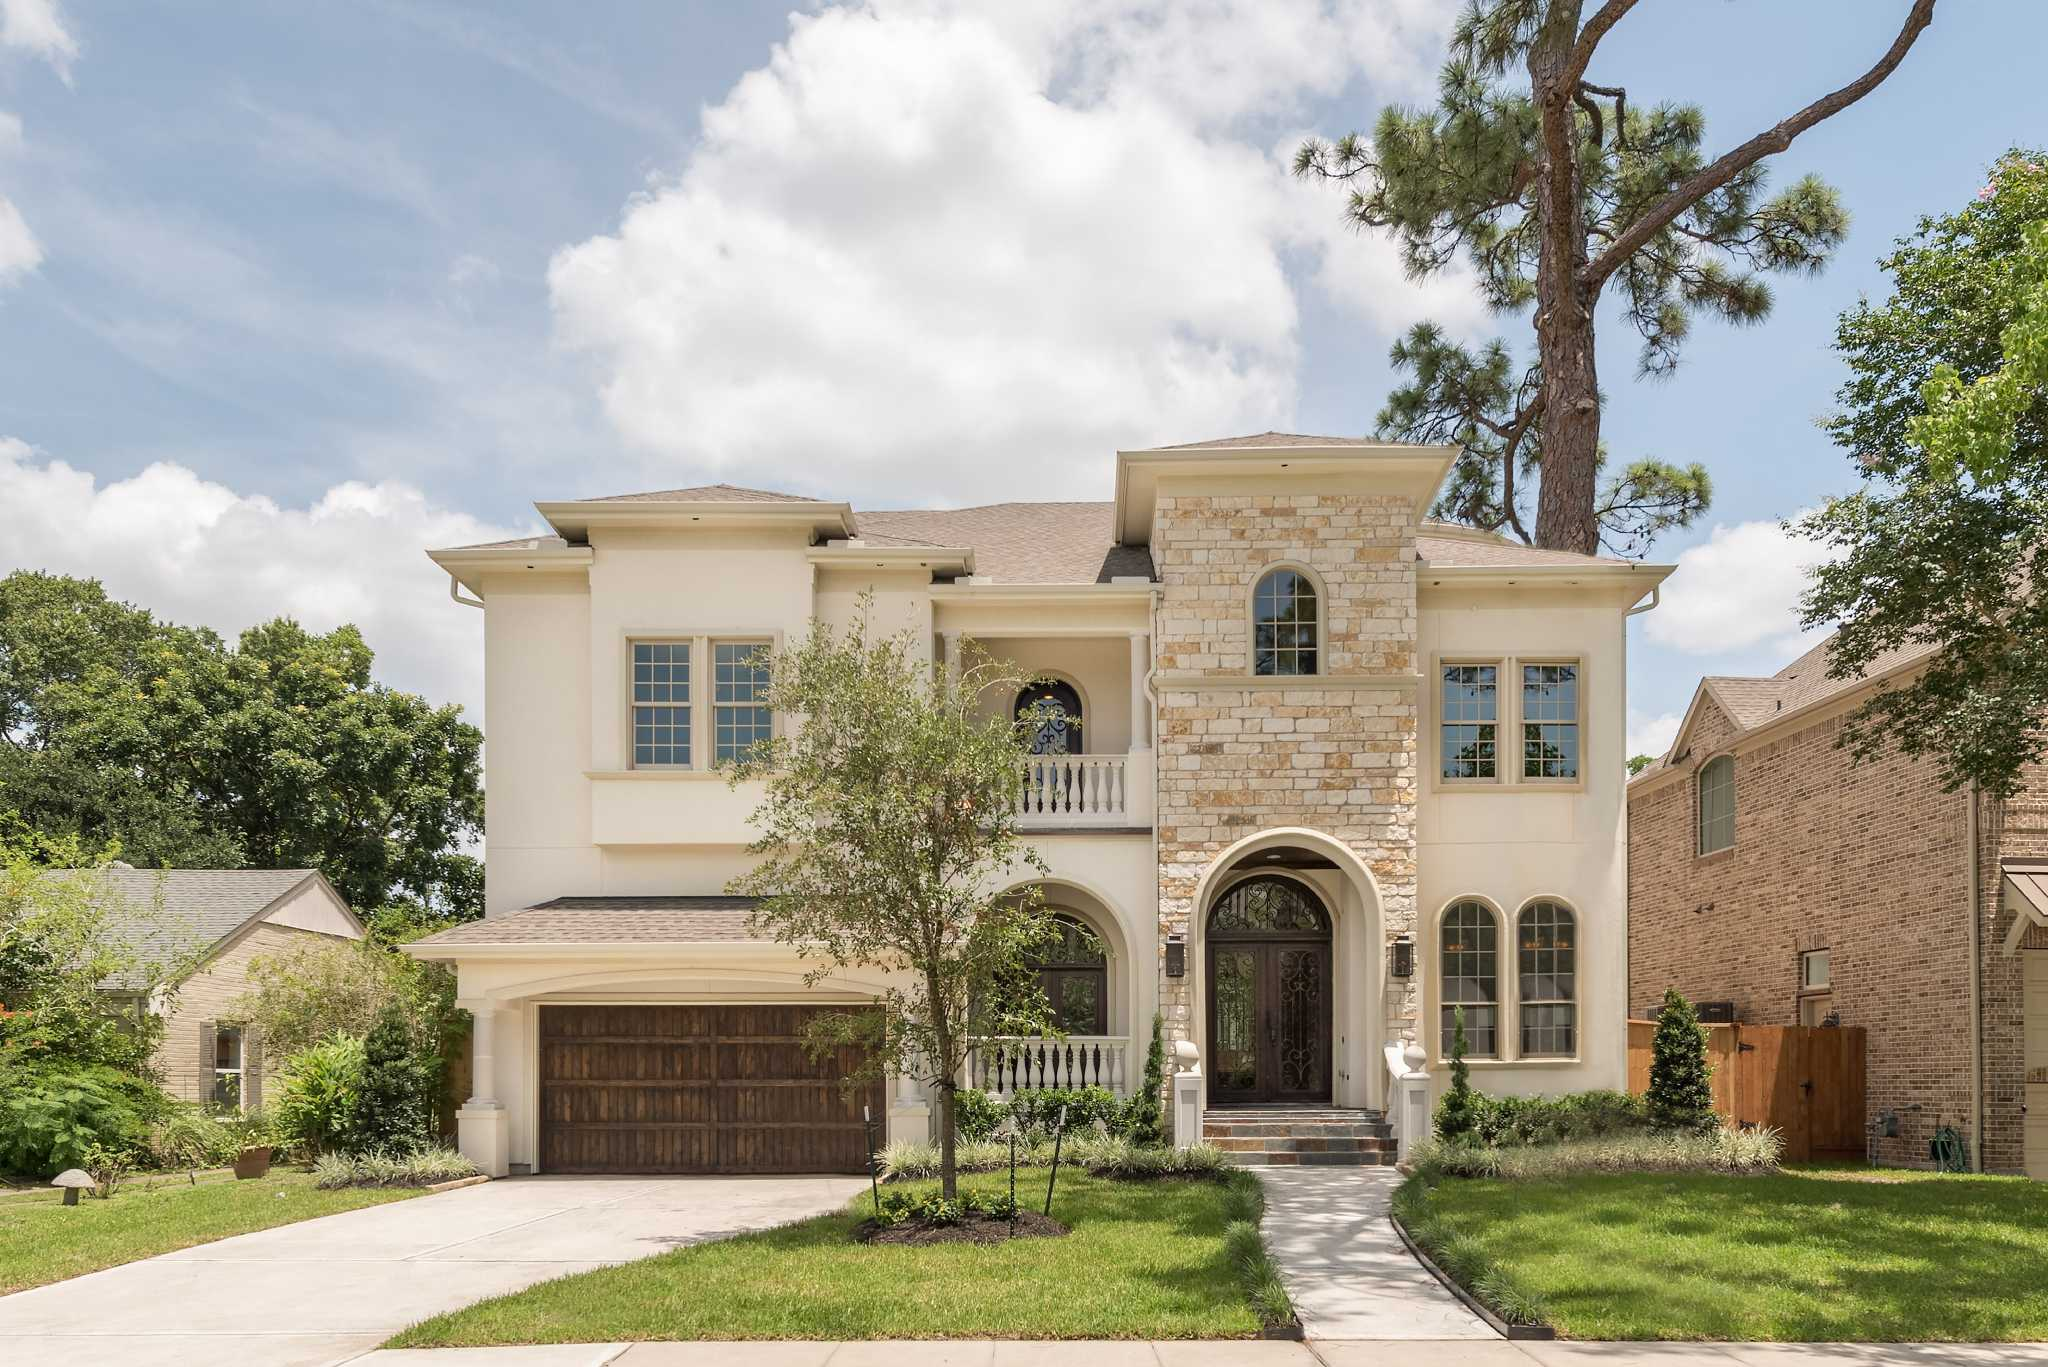 David Weekley Homes Features Build On Your Lot Program